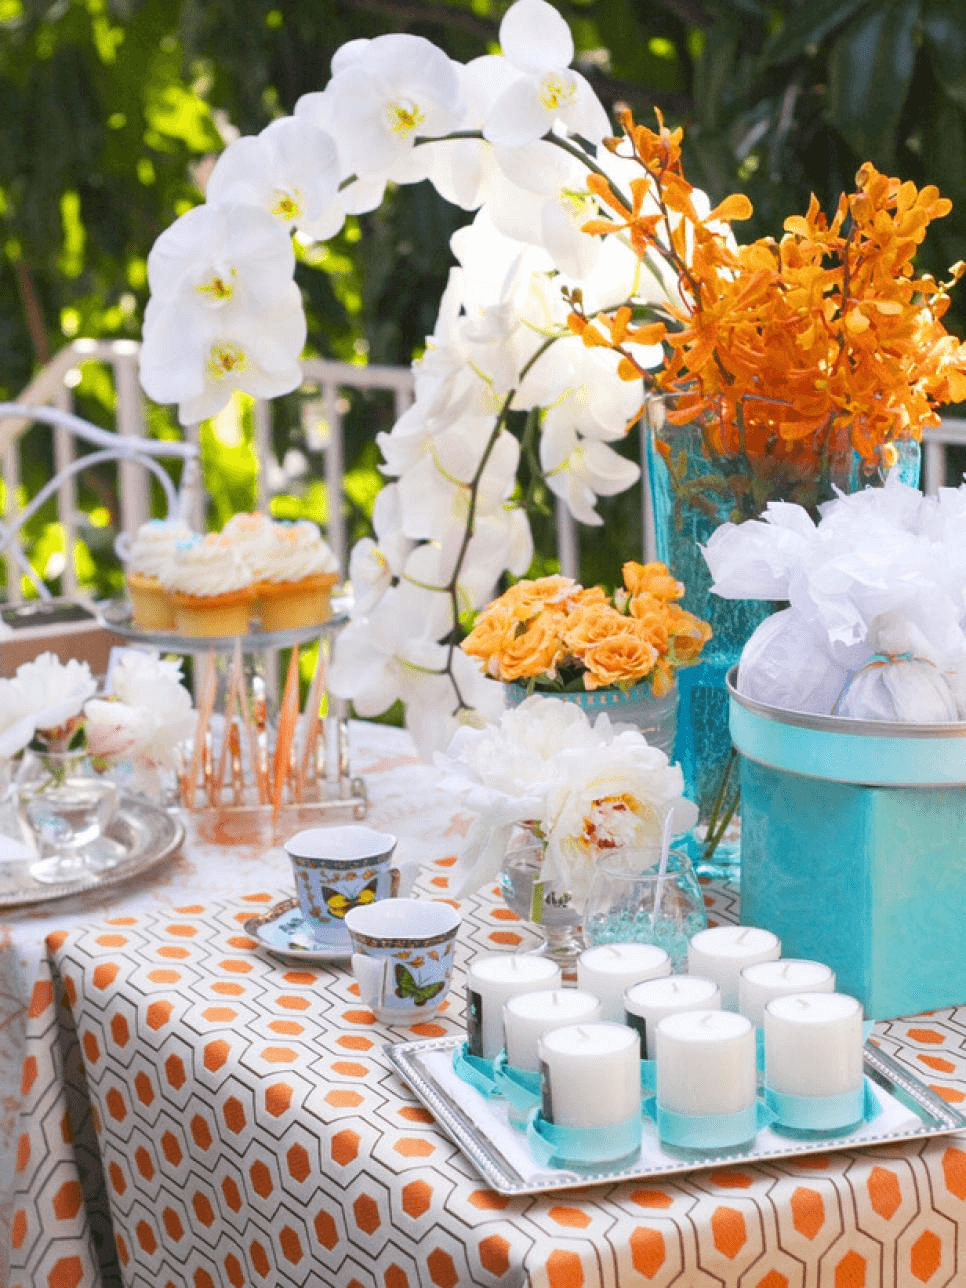 GIFTS TABLE IDEAS FOR PORCH PARTY DECOR